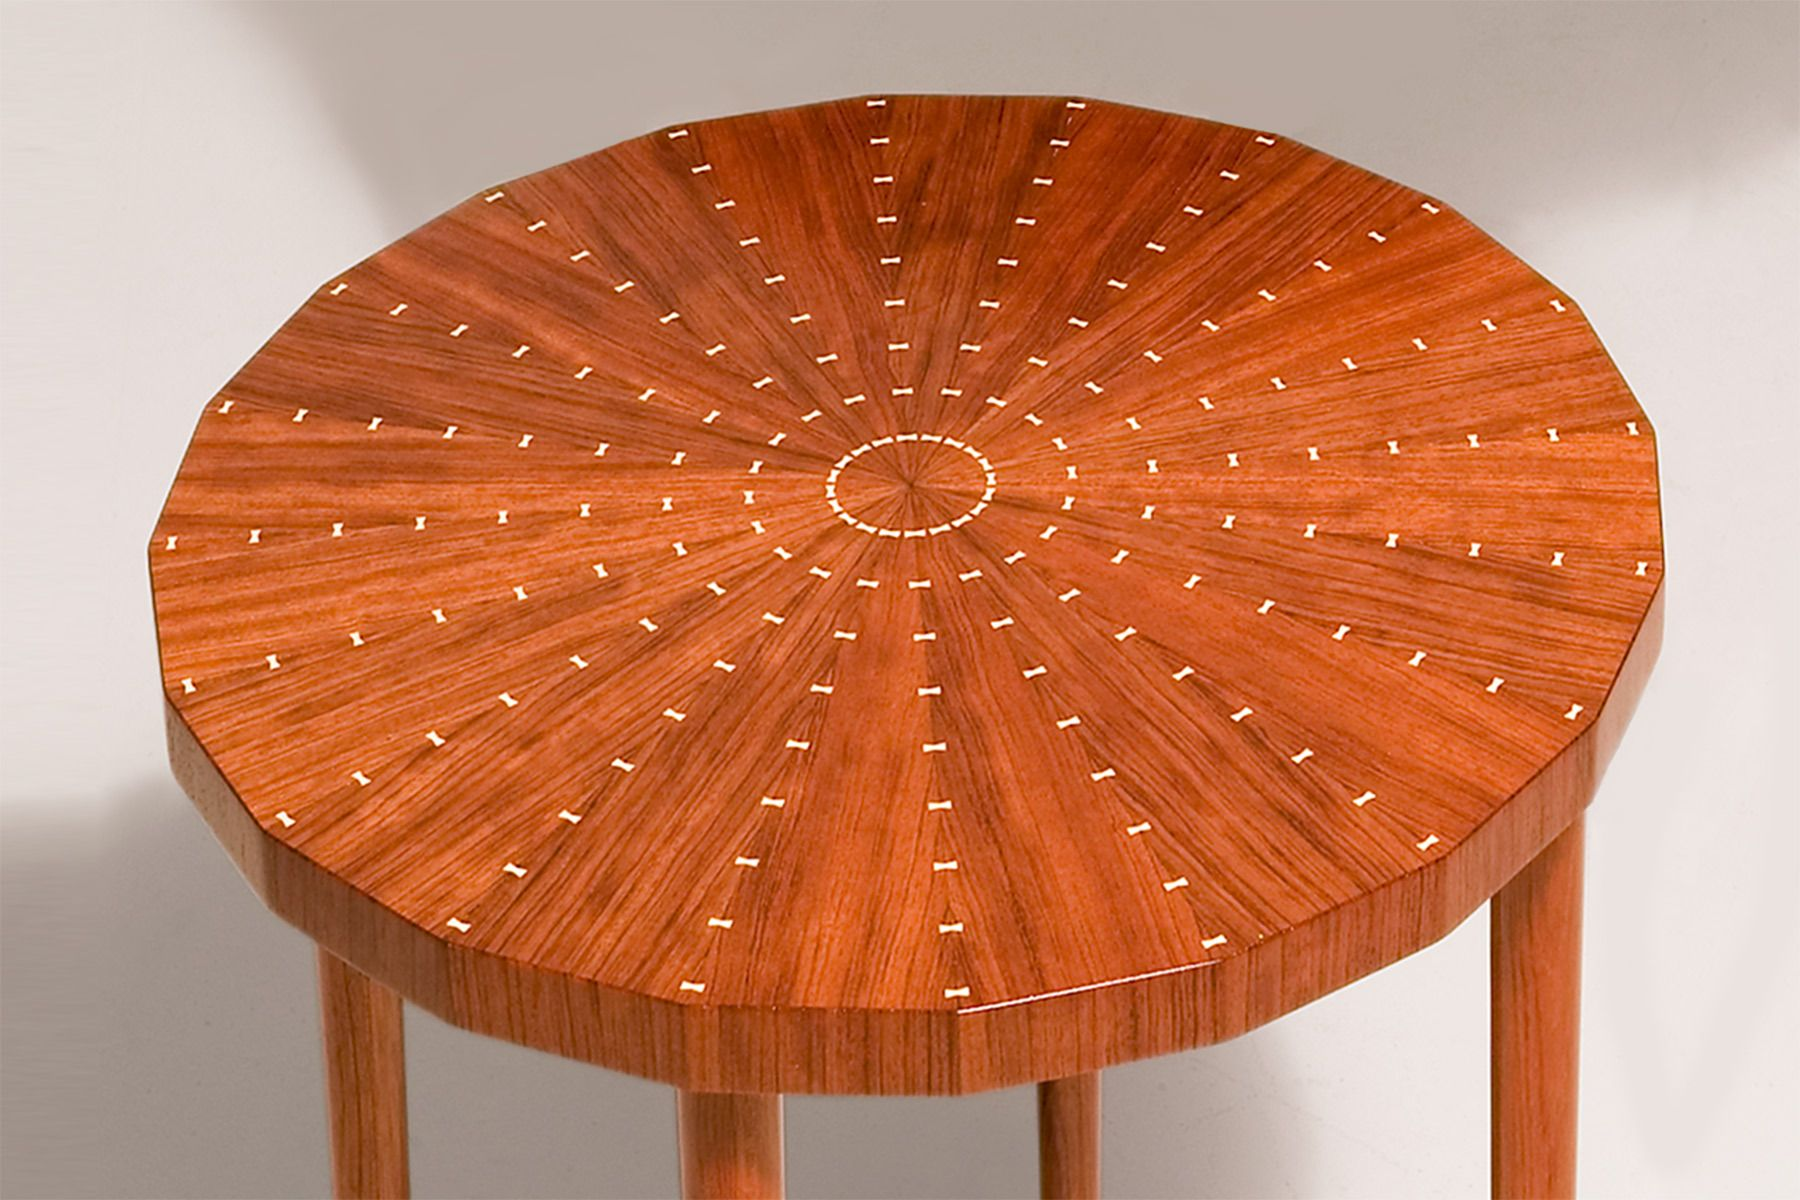 1aaron_levine_contemporary_modern_studio_furniture_maker_wood_woodworker_art_artist_northwest_parquetry_tessellation_inlay_butterfly_epicenter_table_detail2.jpg